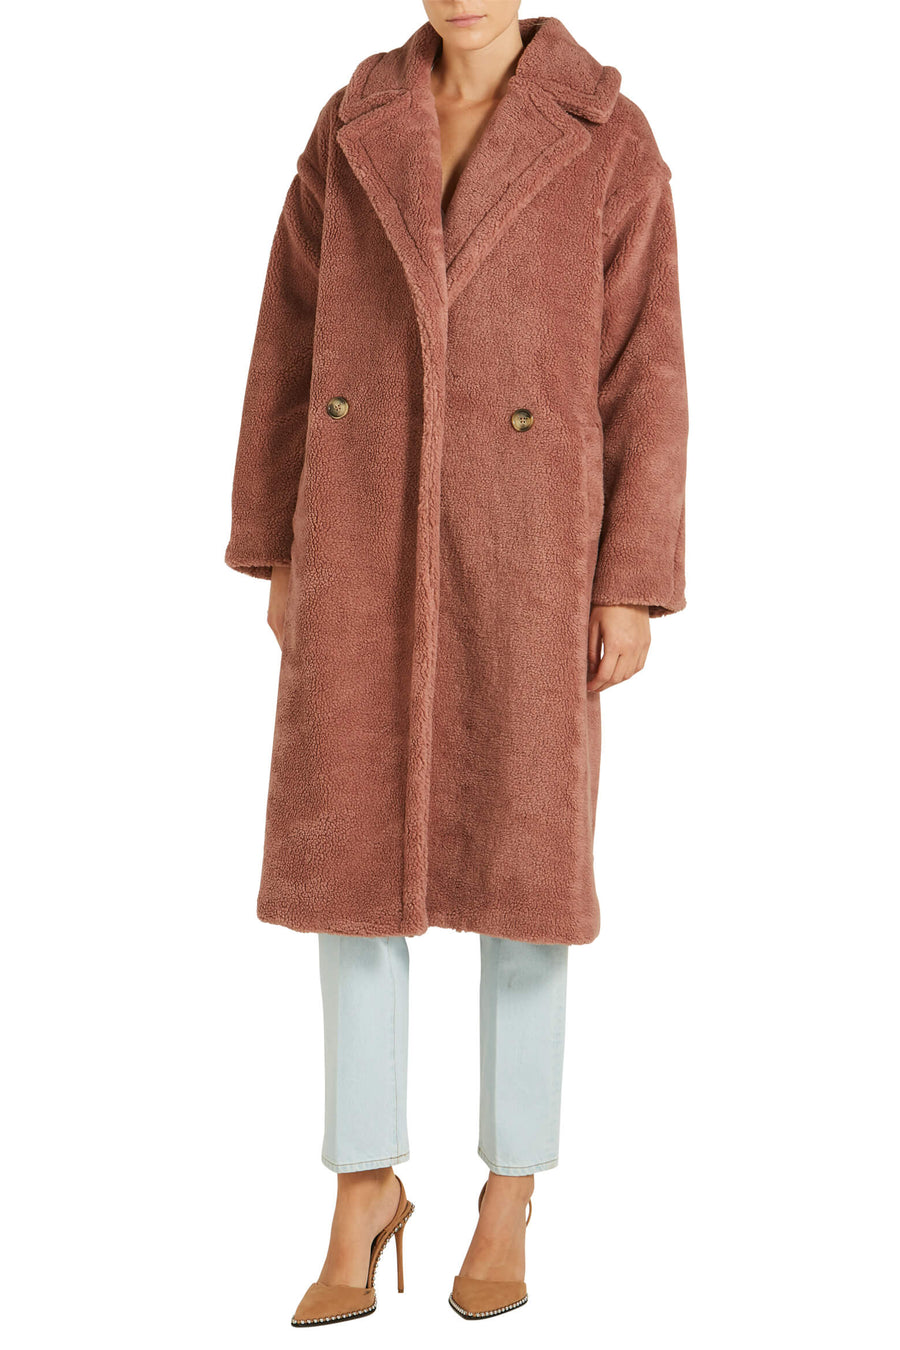 Ducie London Teddy Coat Rose from The New Trend